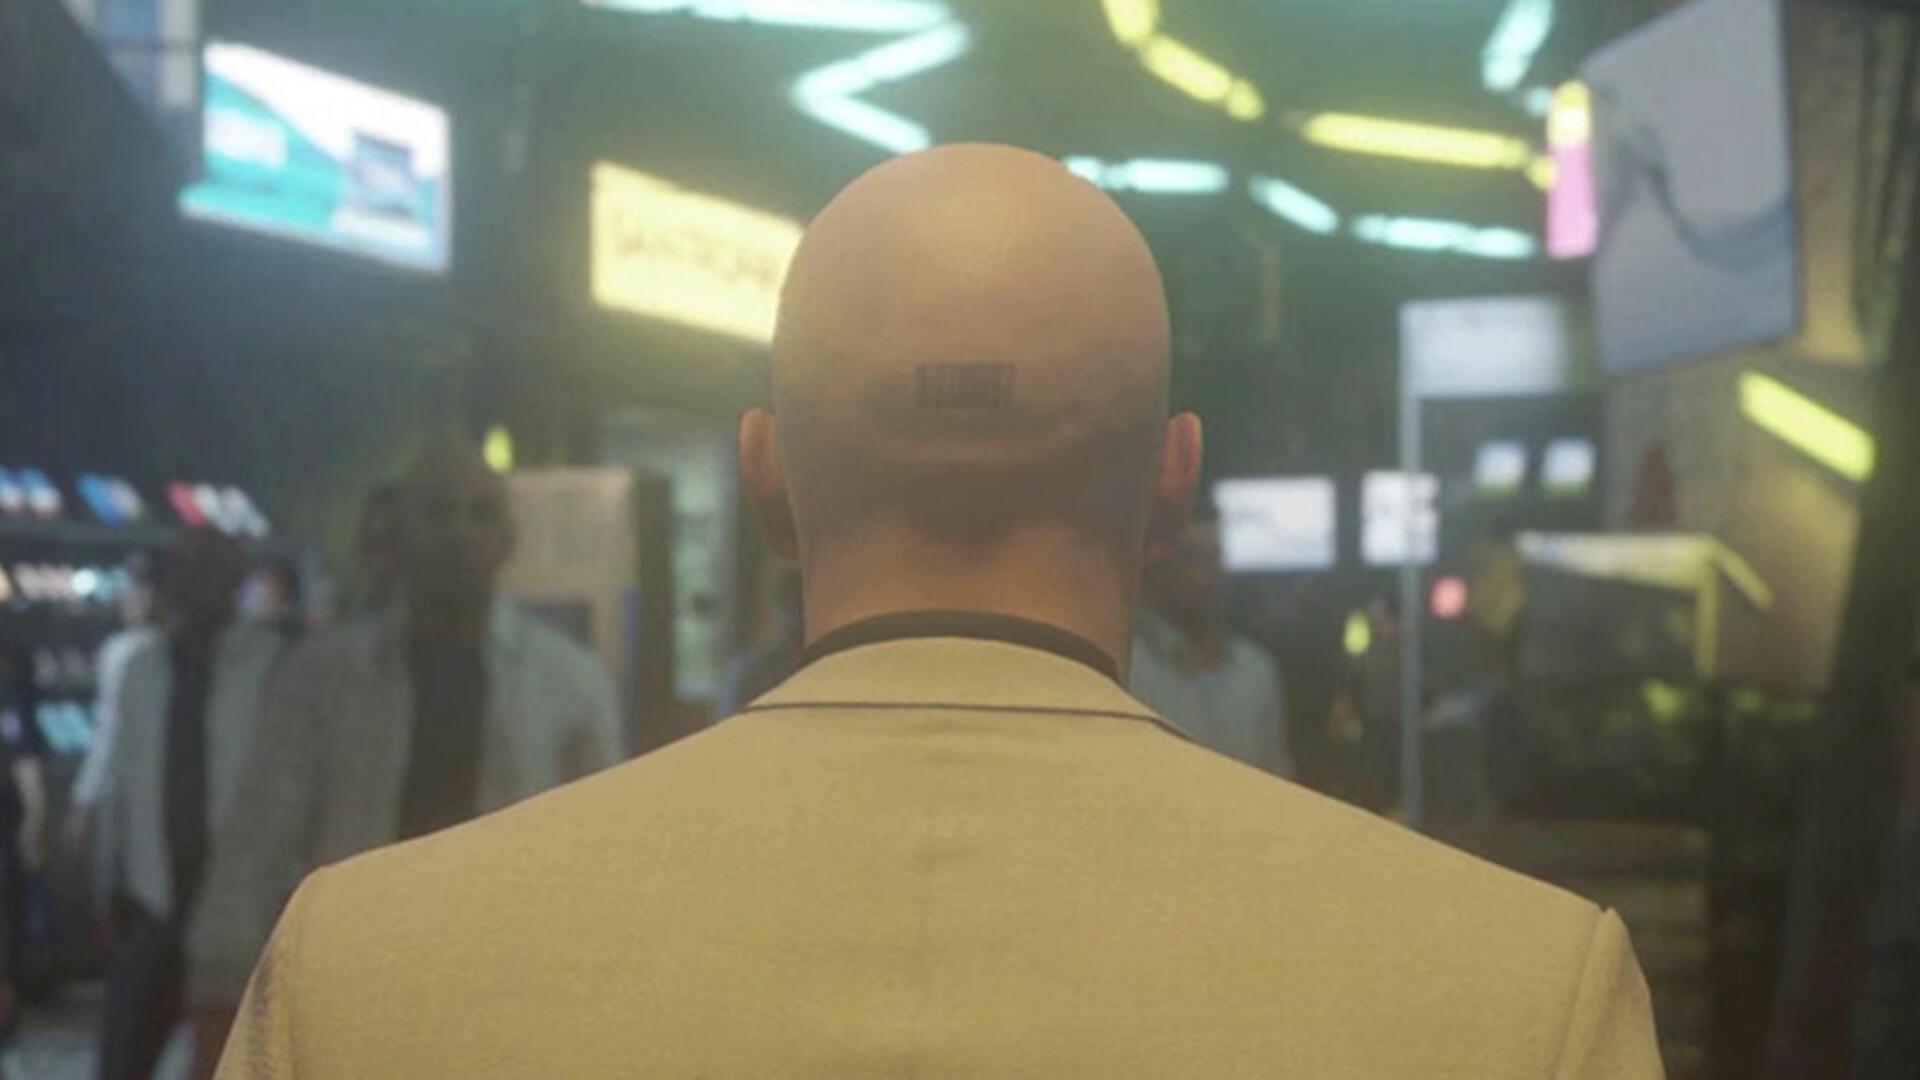 IO Interactive Says Hitman Gained Five Million Players Since the Start of 2017